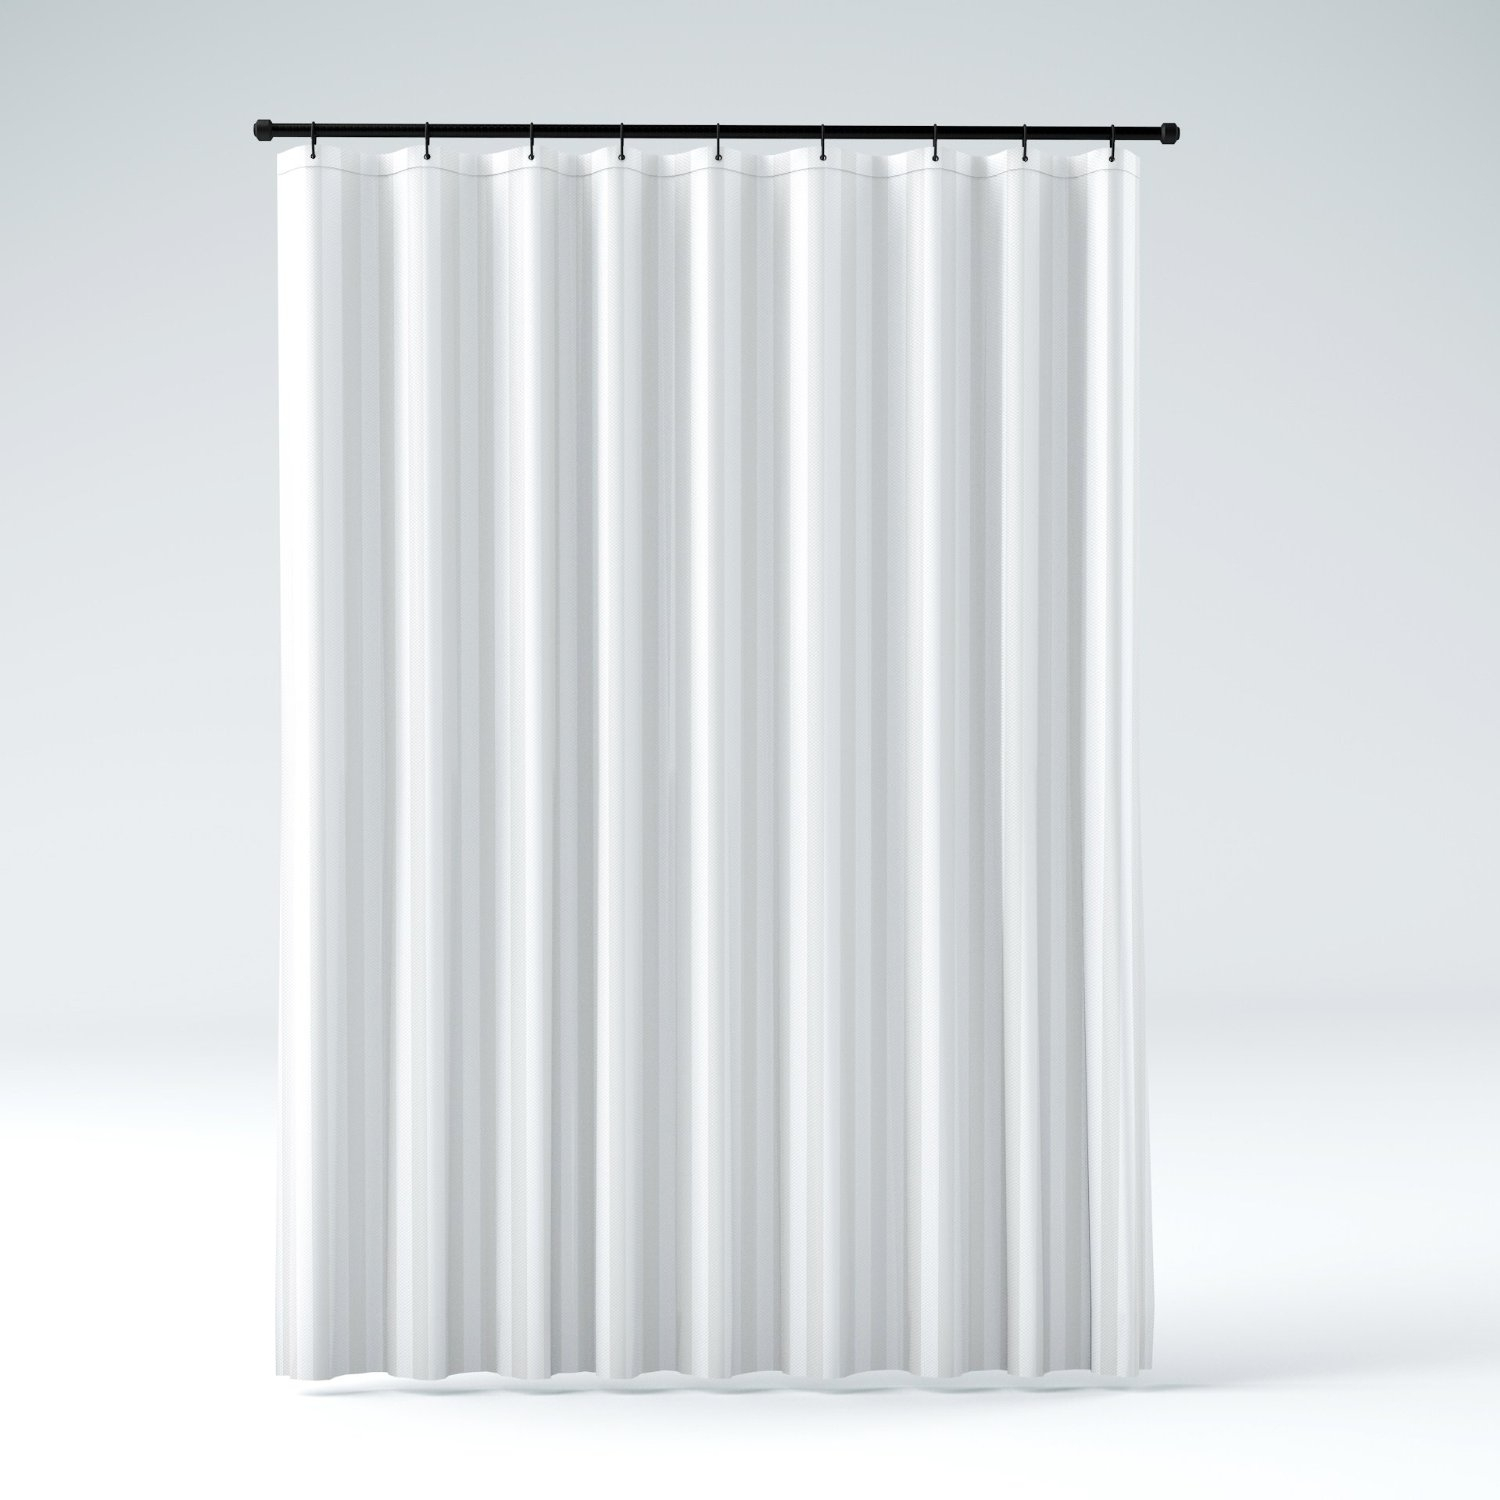 Best Vinyl Shower Curtain Liner Shower Curtain Ideas throughout sizing 1500 X 1500